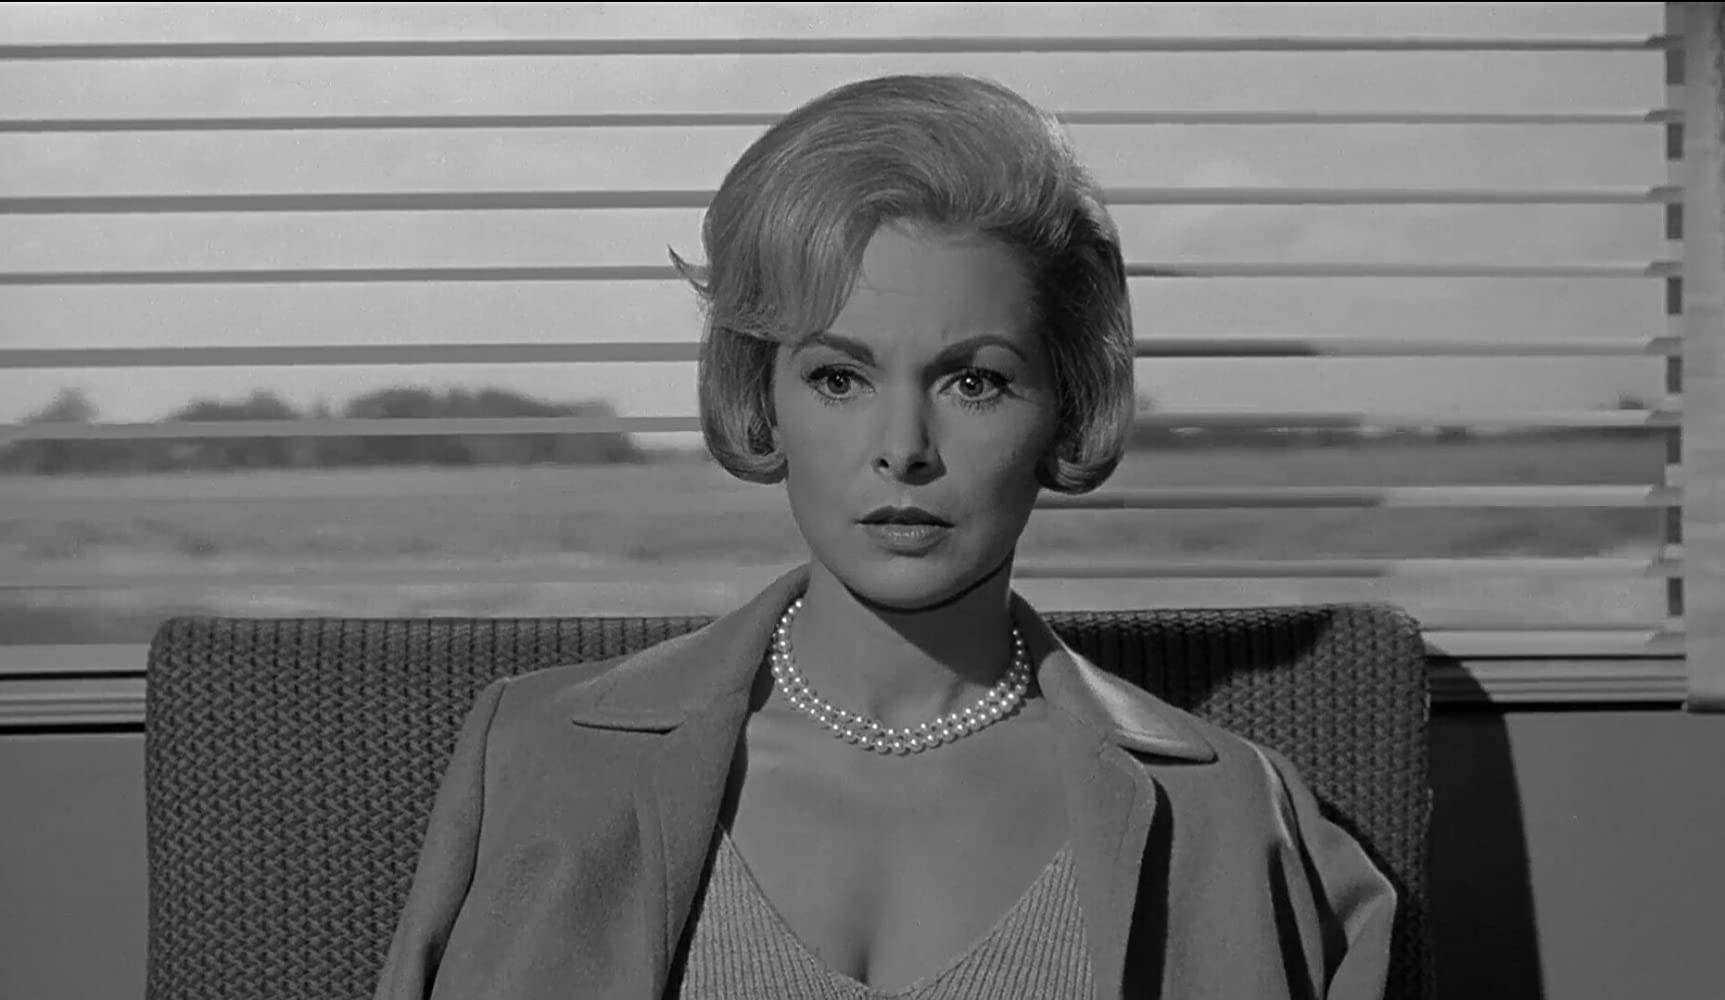 Janet Leigh in The Manchurian Candidate (1962)